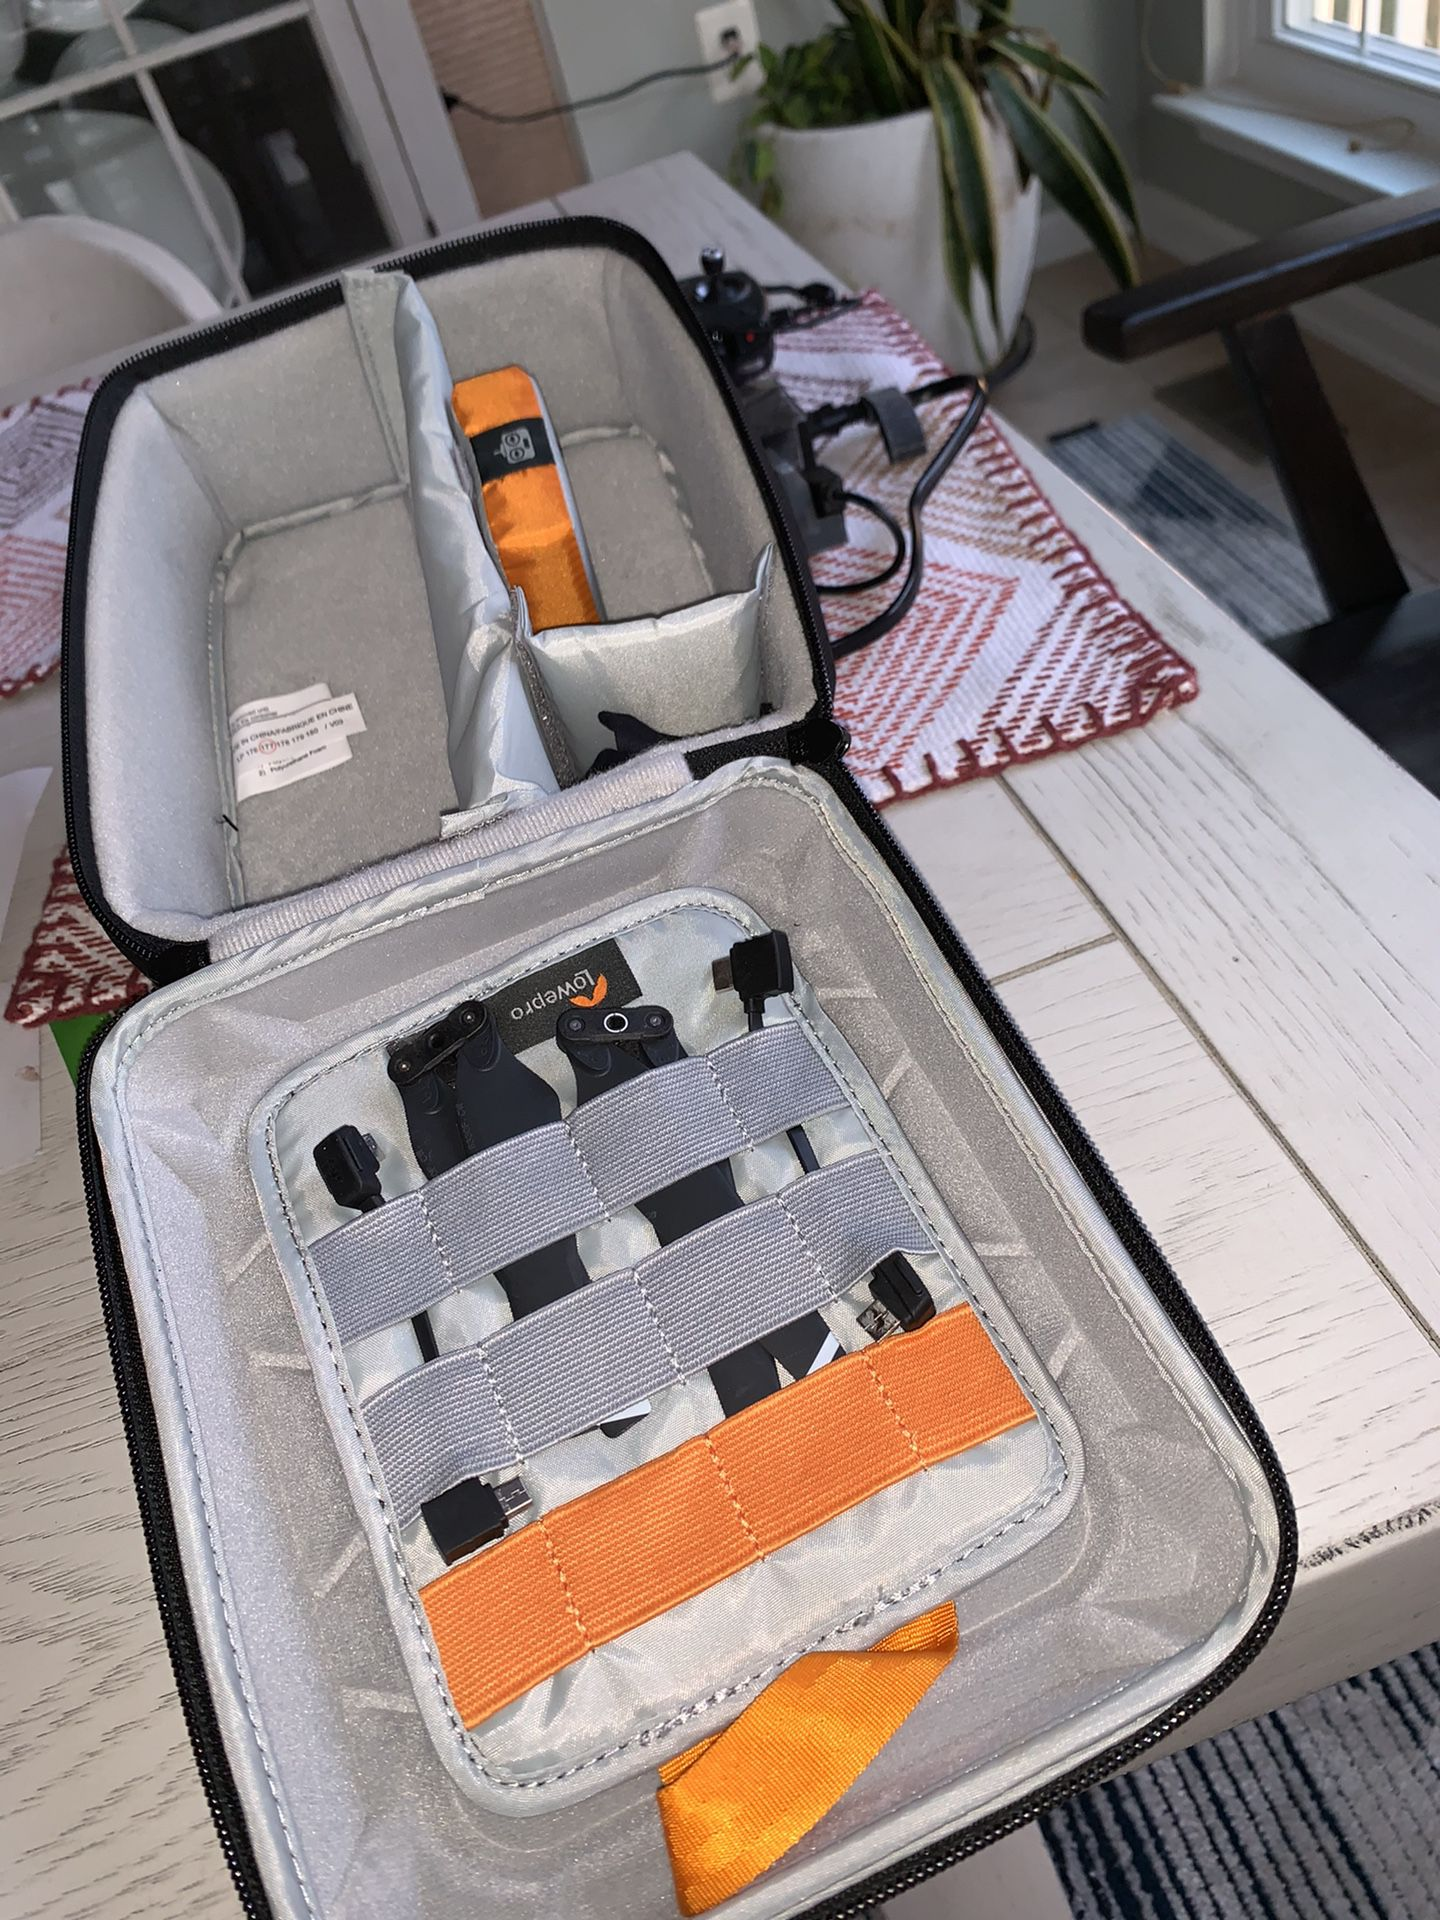 DJI Mavic Pro with storage case